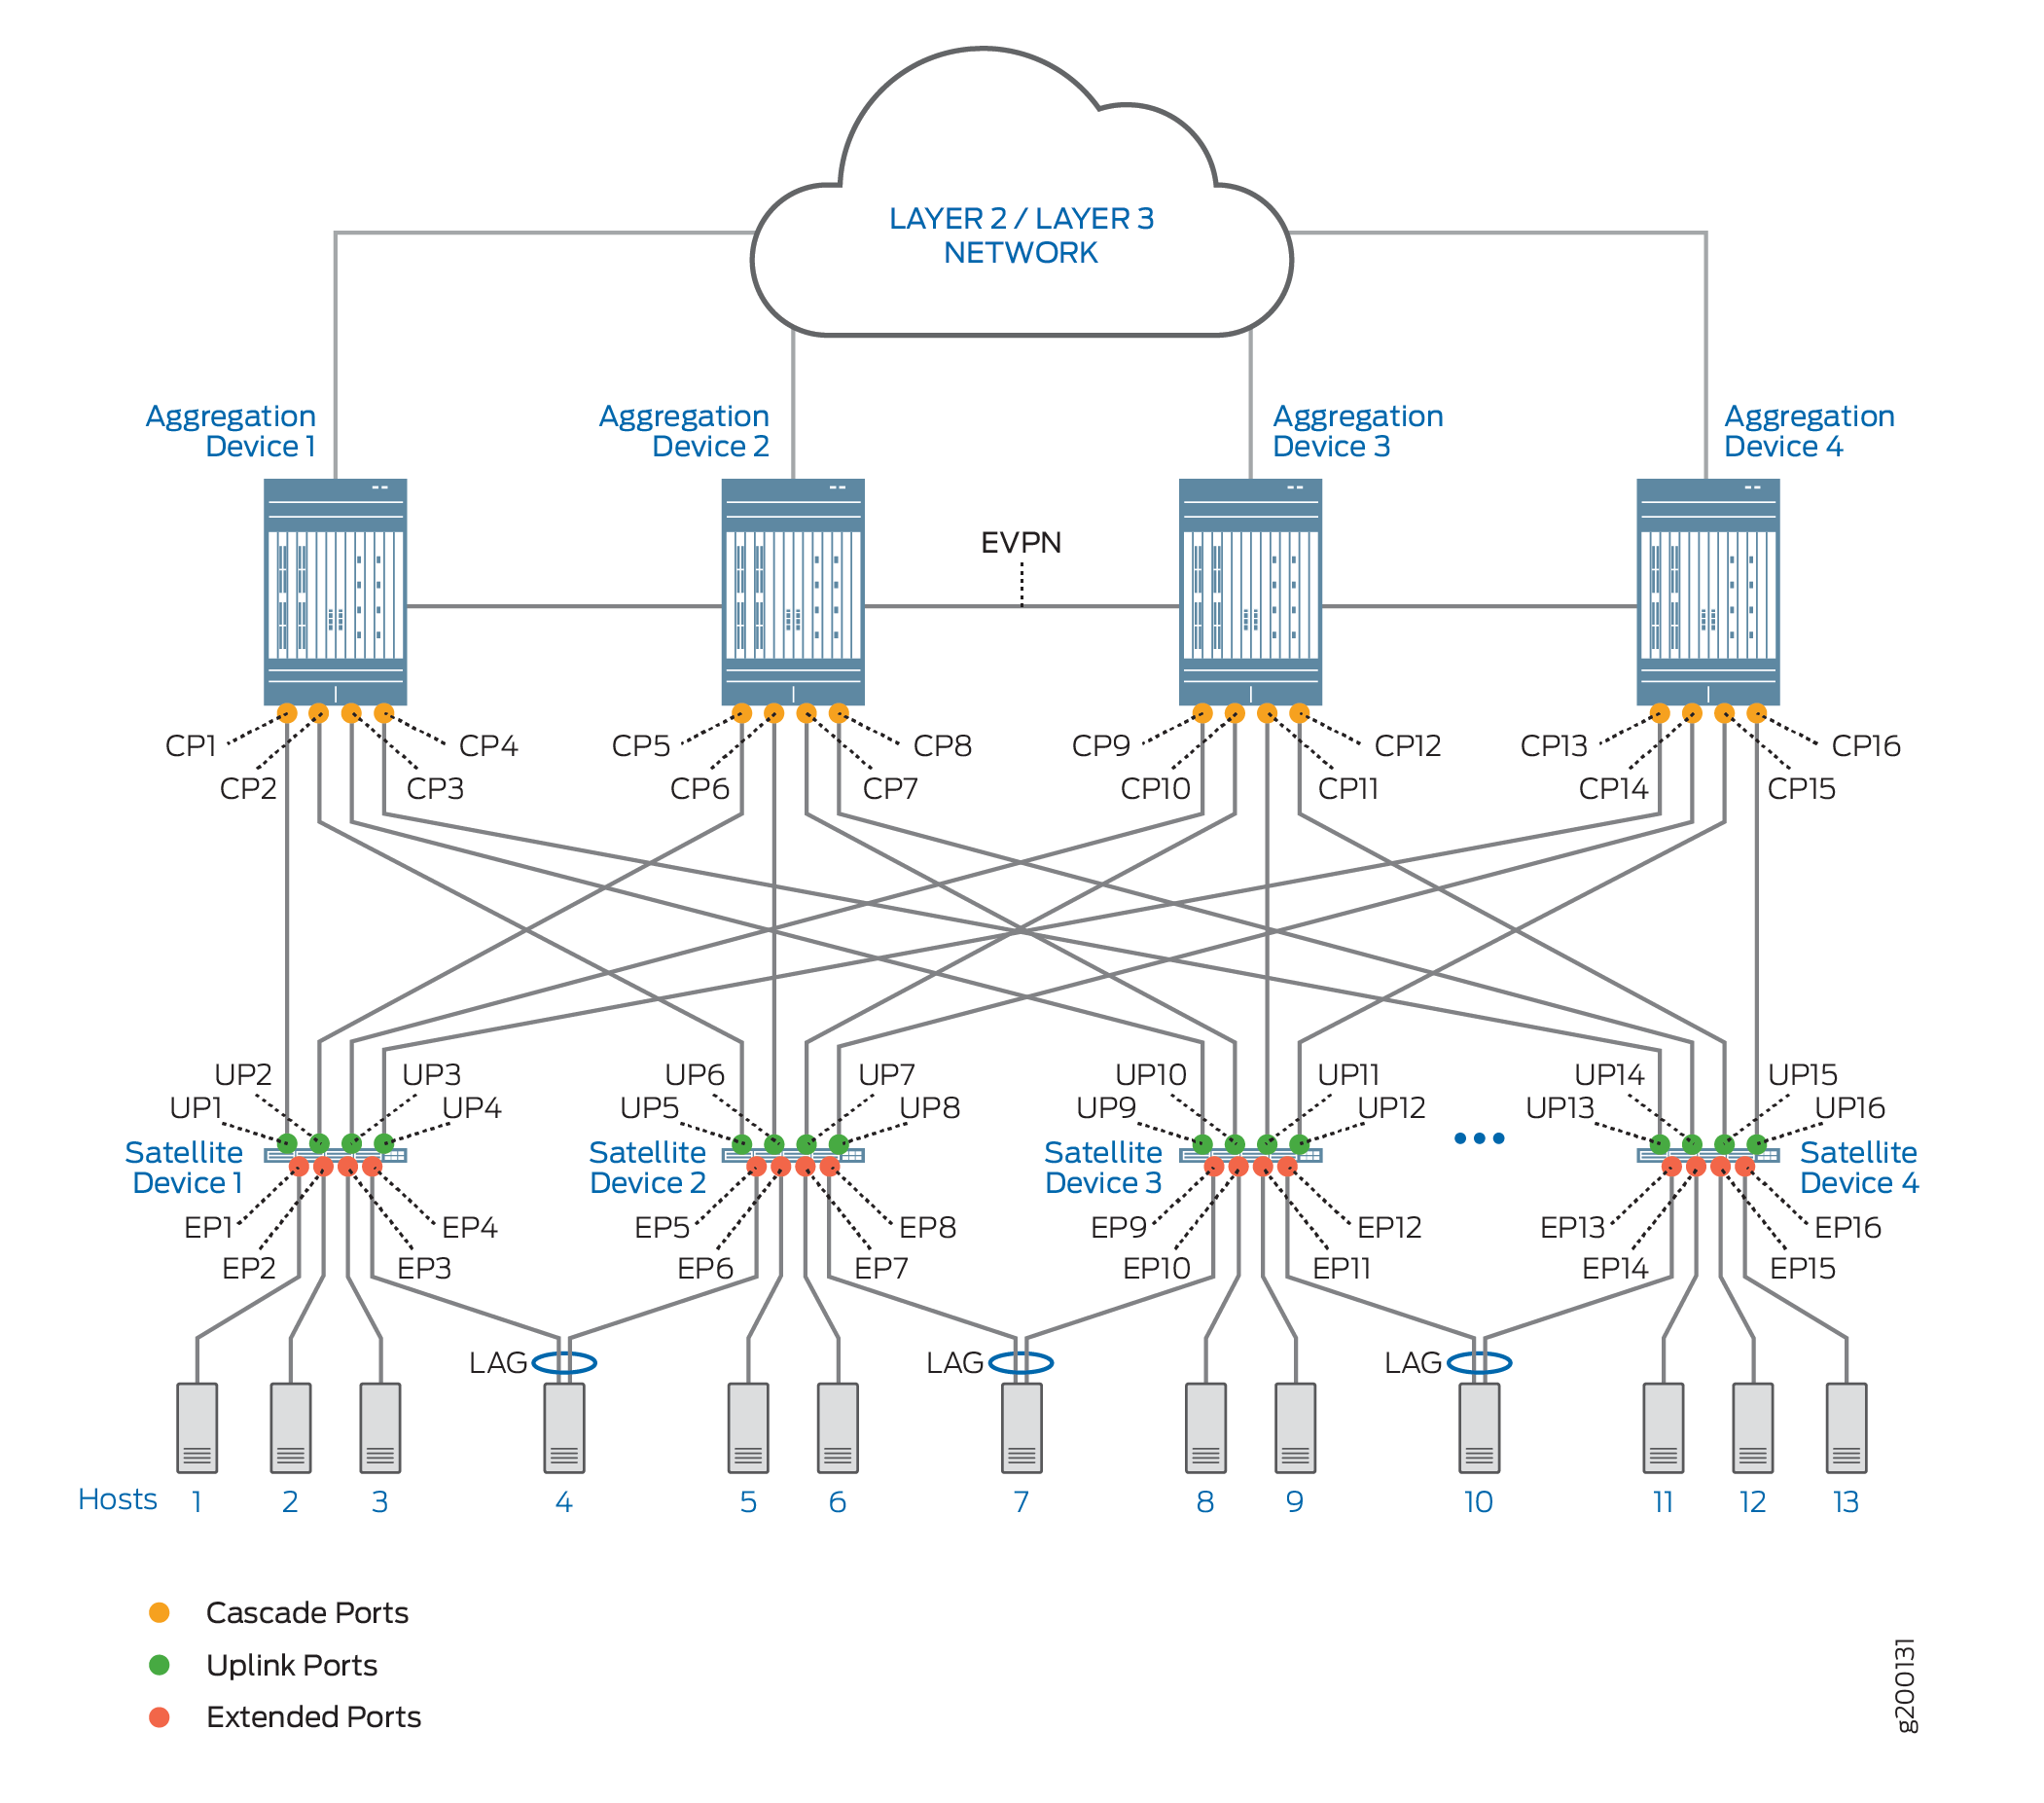 Cascade, Uplink, and Extended Ports in a Junos Fusion Data Center Topology With Four Aggregation Devices and EVPN